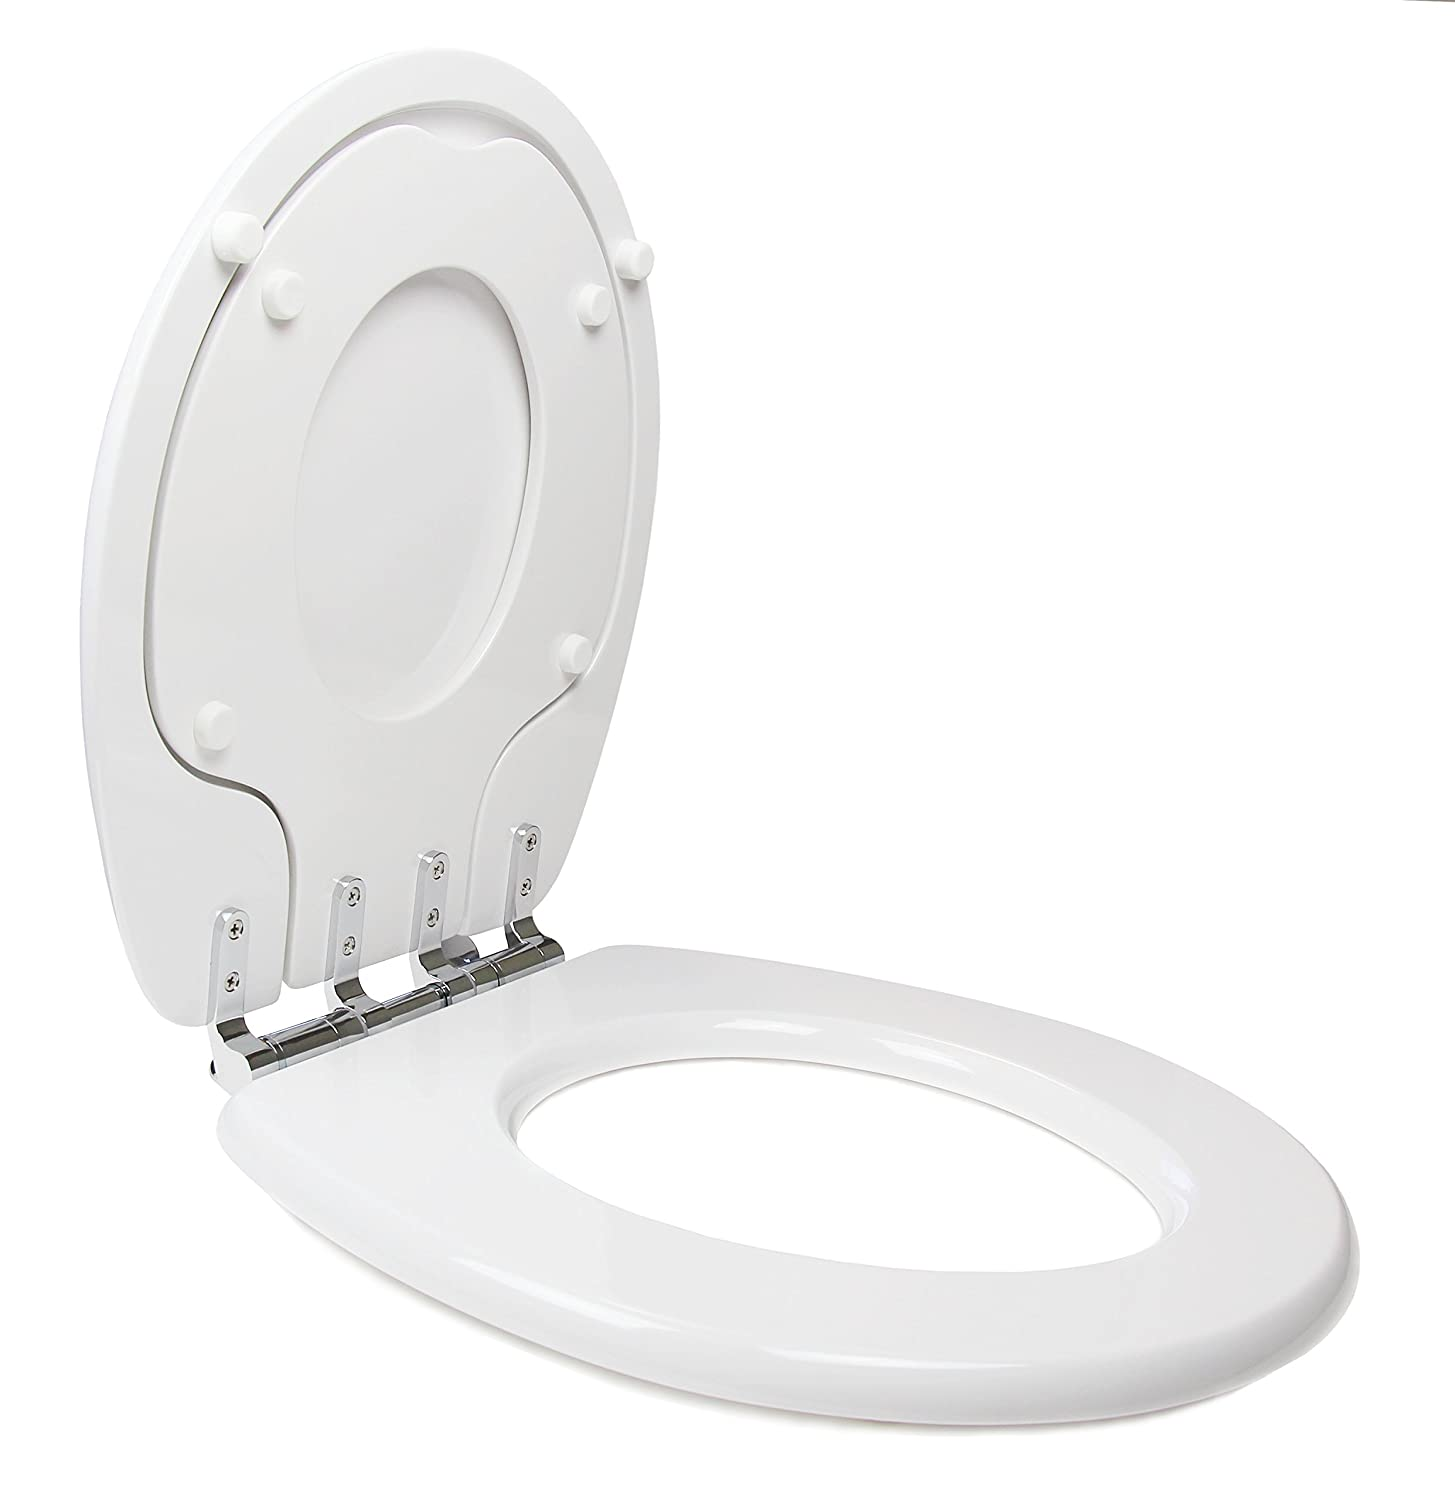 Incredible Topseat Tinyhiney Potty Round Toilet Seat Adult Child W Slow Close Chromed Metal Hinges Wood White Dailytribune Chair Design For Home Dailytribuneorg